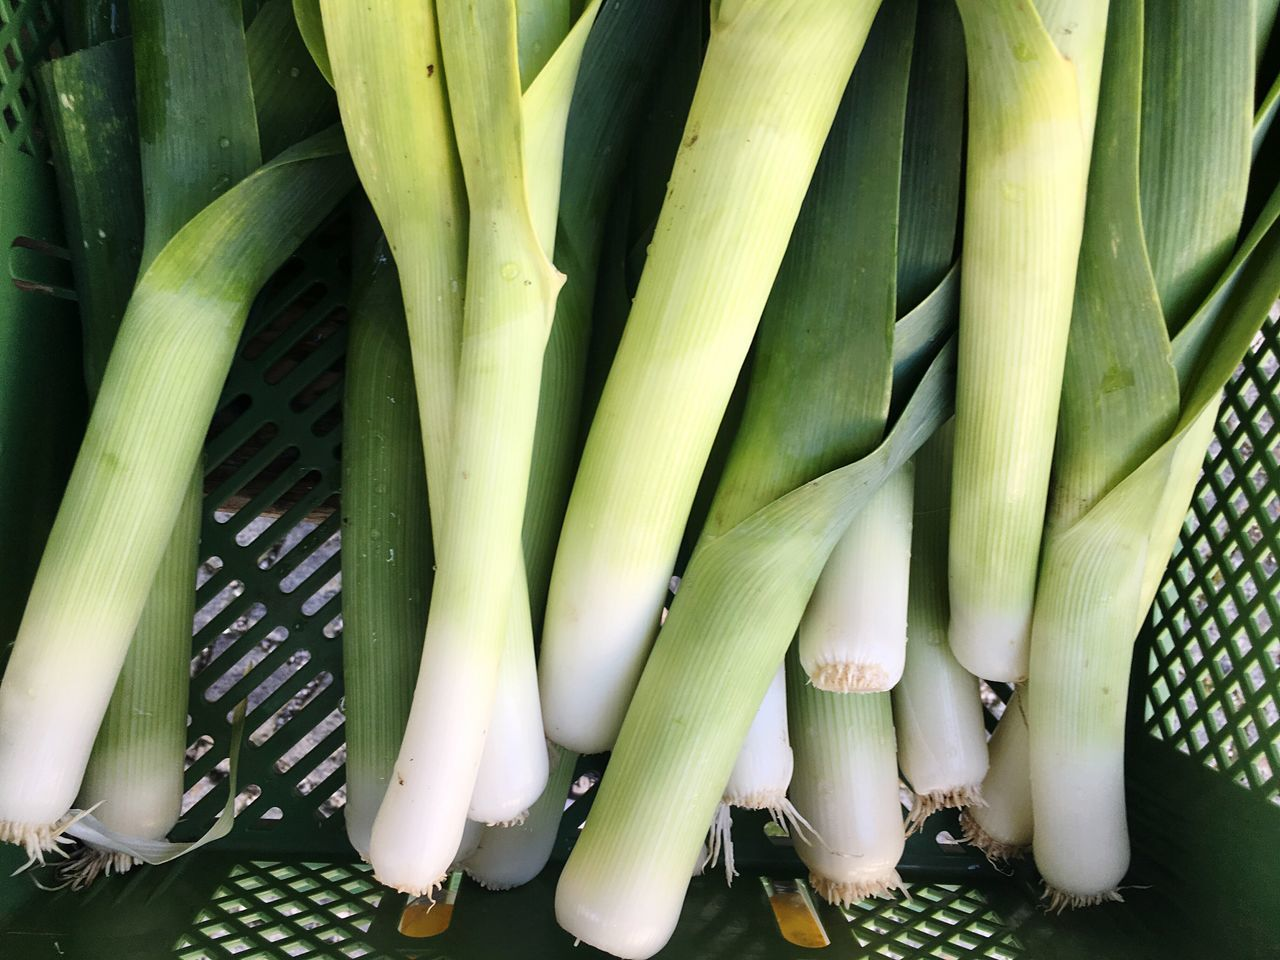 Leek Lauch Vegetables